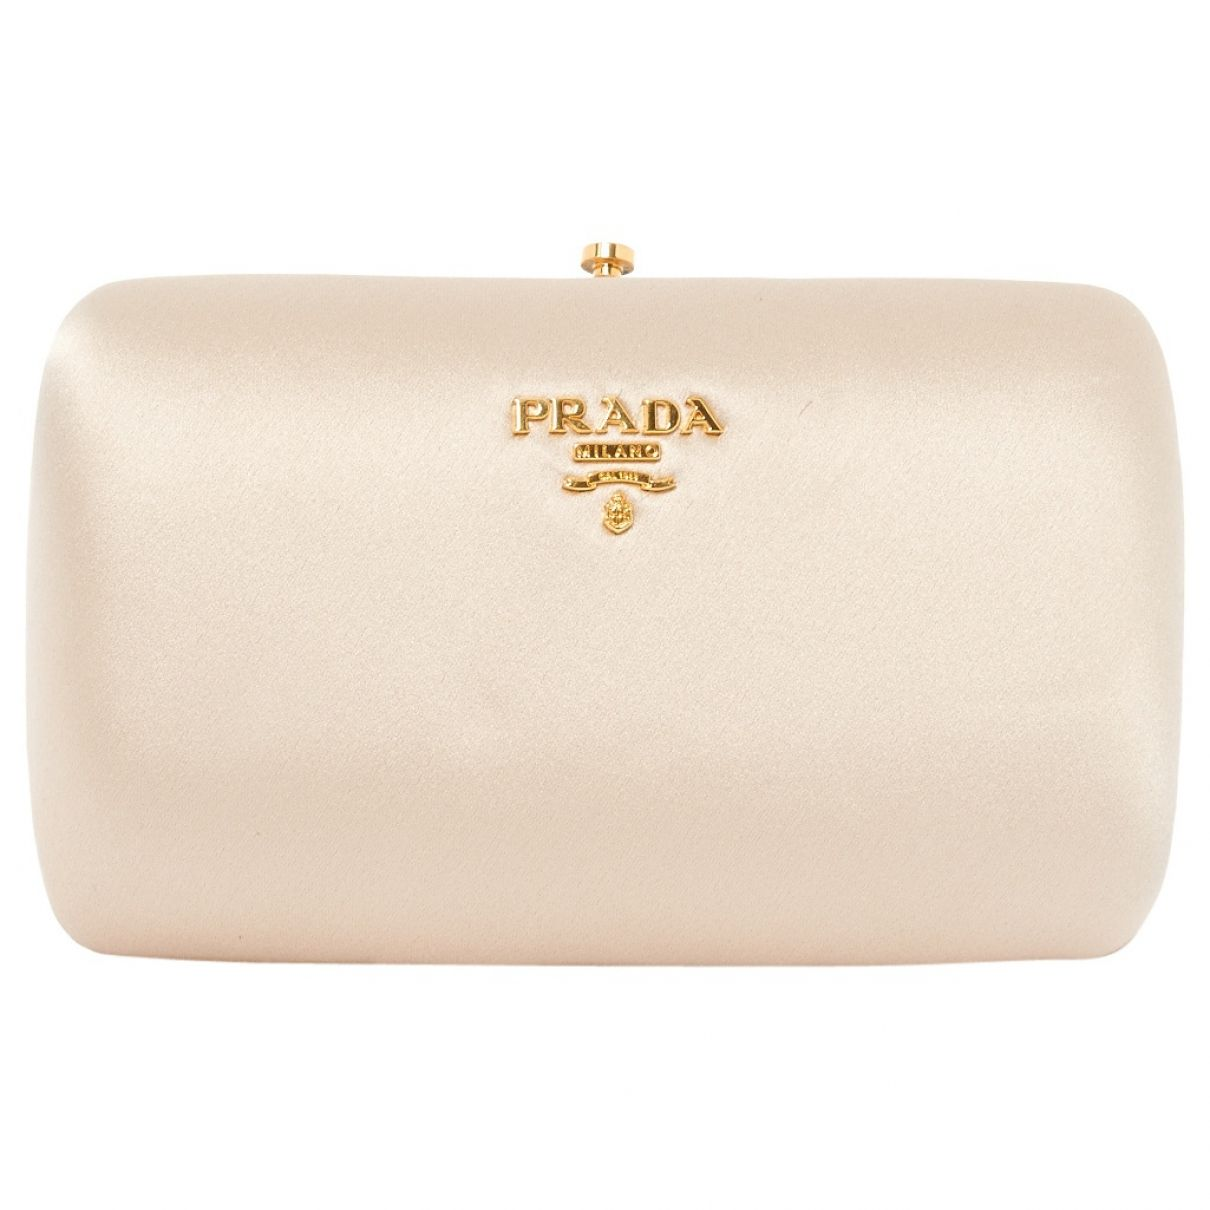 66b34f5bc520 ... discount code for prada satin pink beige clutch bag as owned by kate  middleton 92543 c3fb0